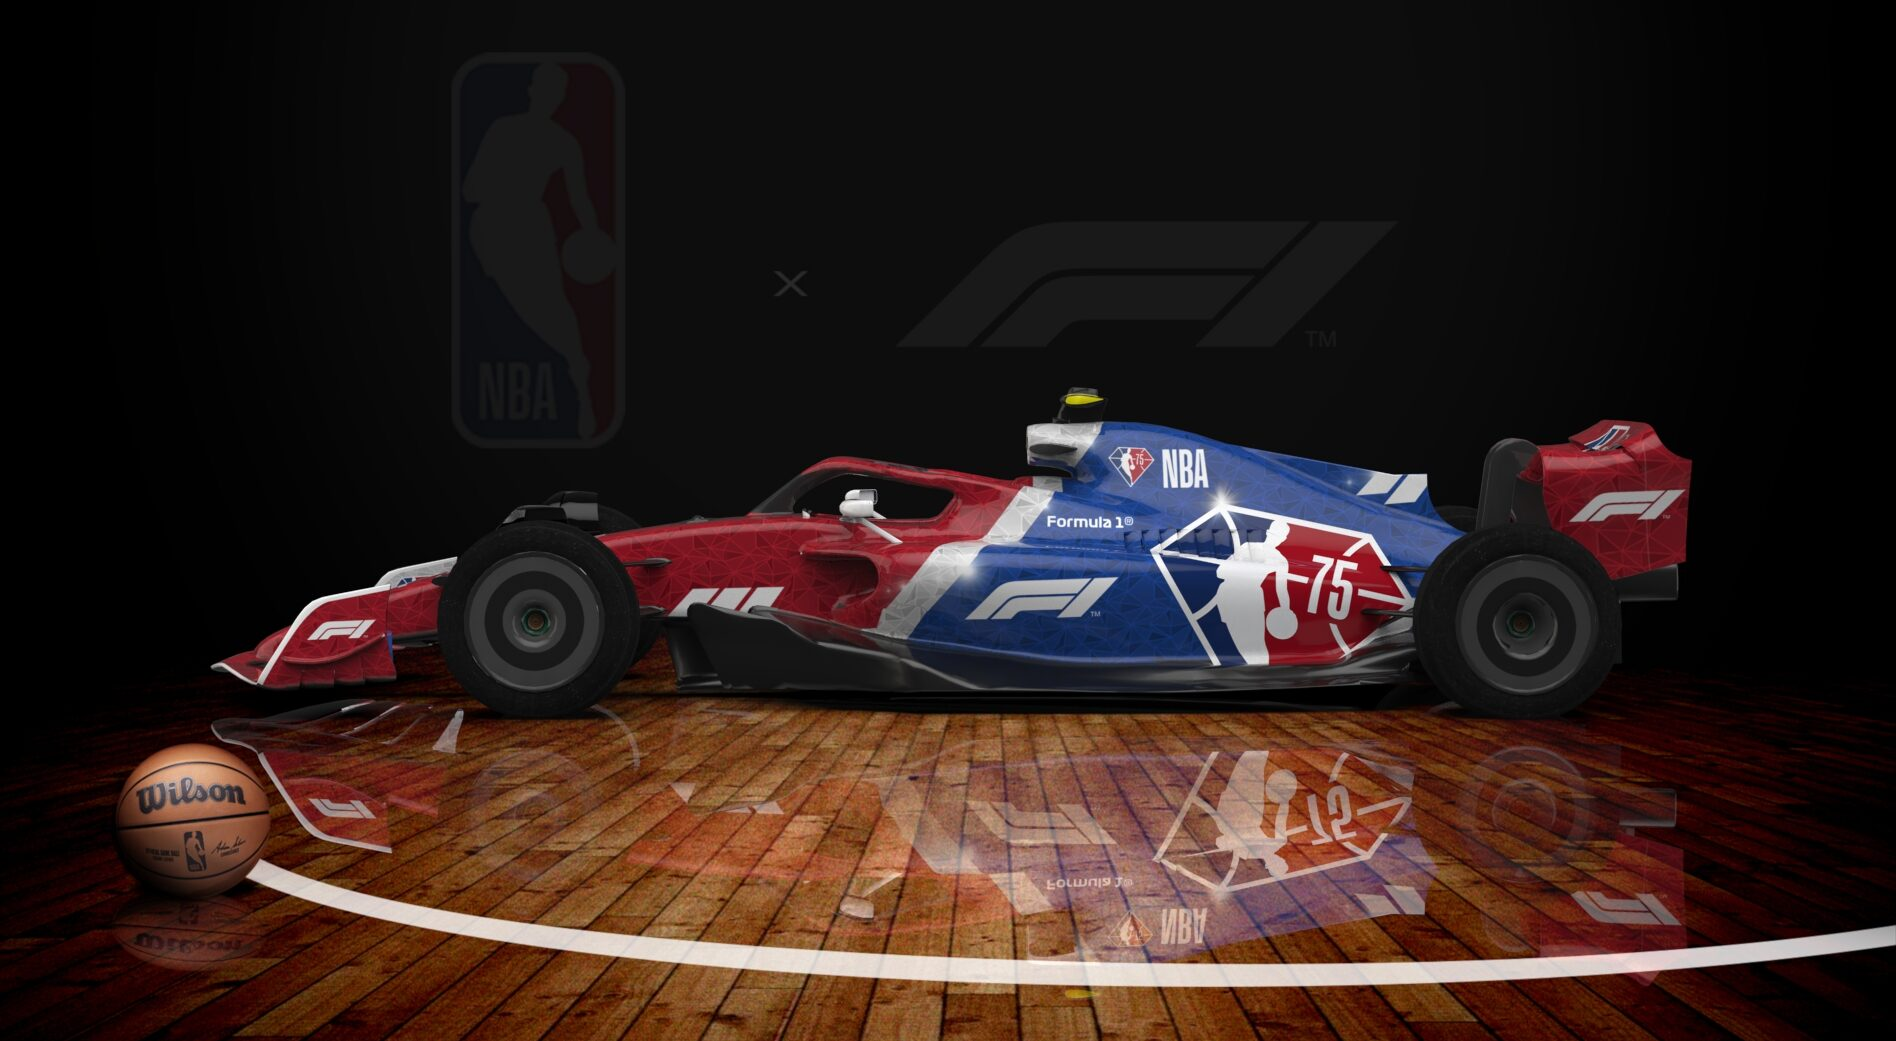 NBA, Formula 1 announce content and promotion partnership